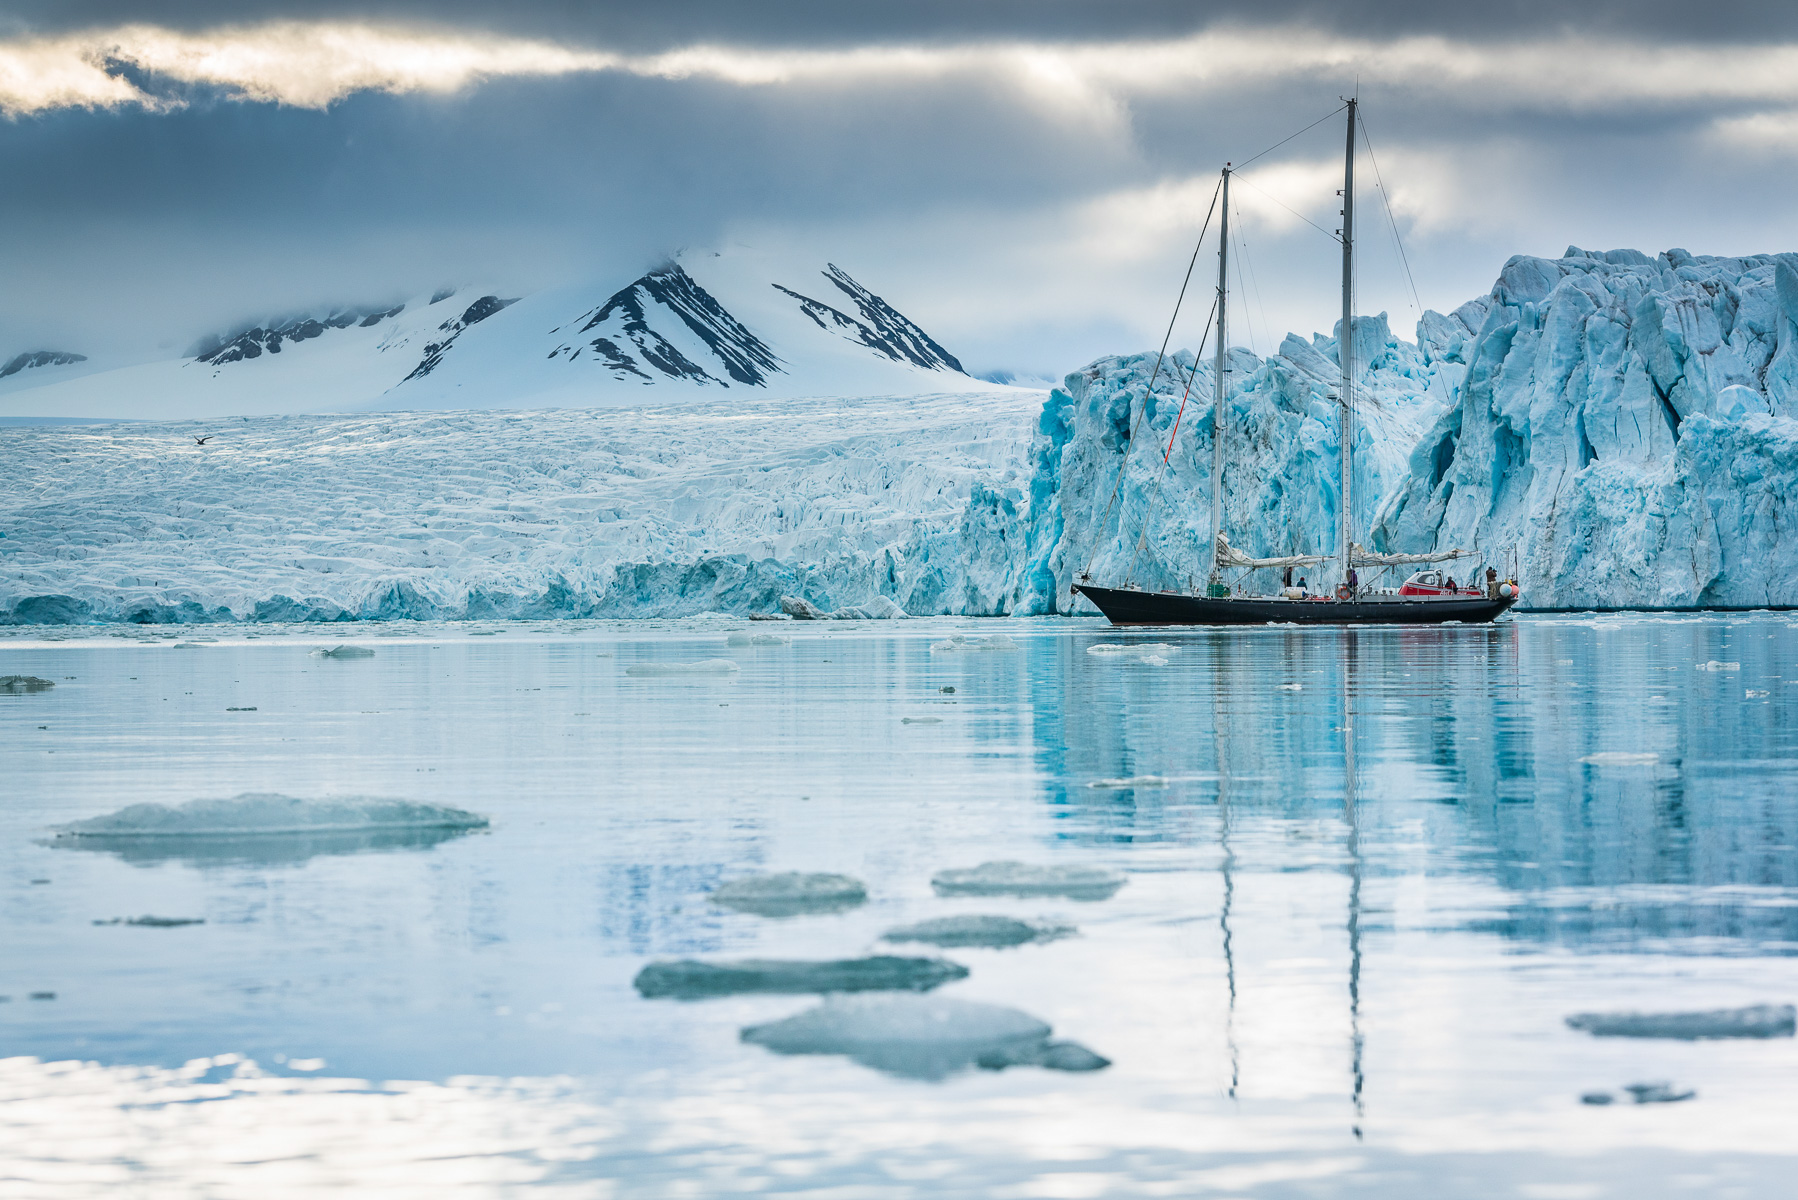 Sailing the icy fjords of Spitsbergen